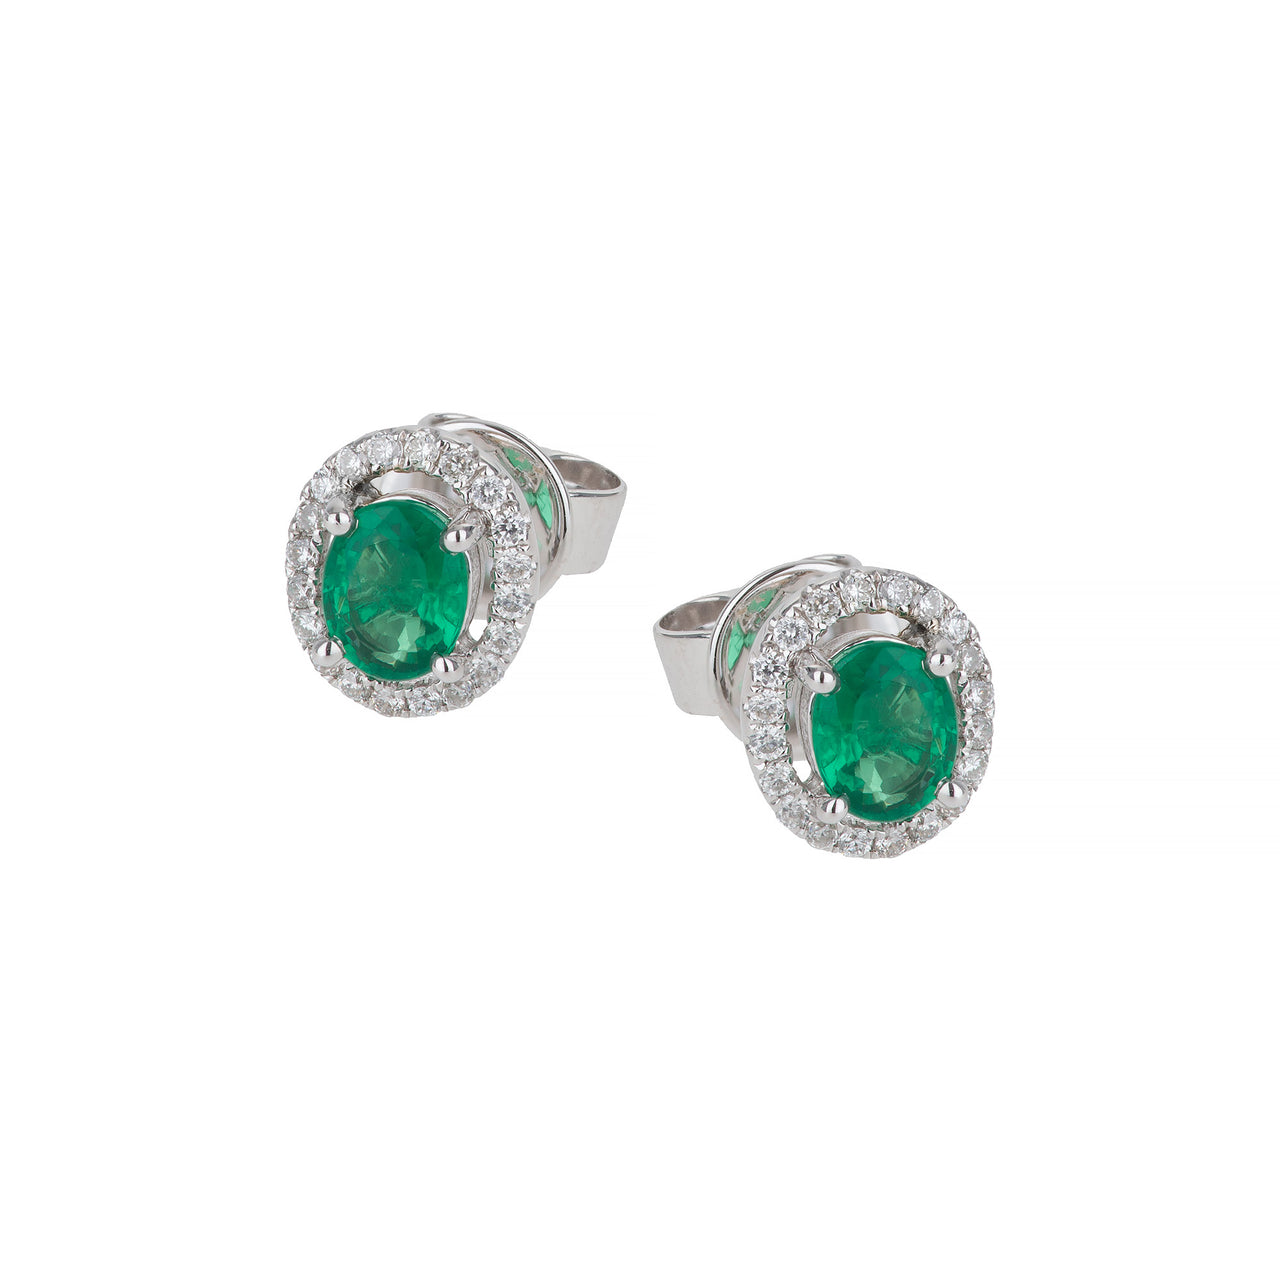 18ct white gold emerald & diamond cluster earring